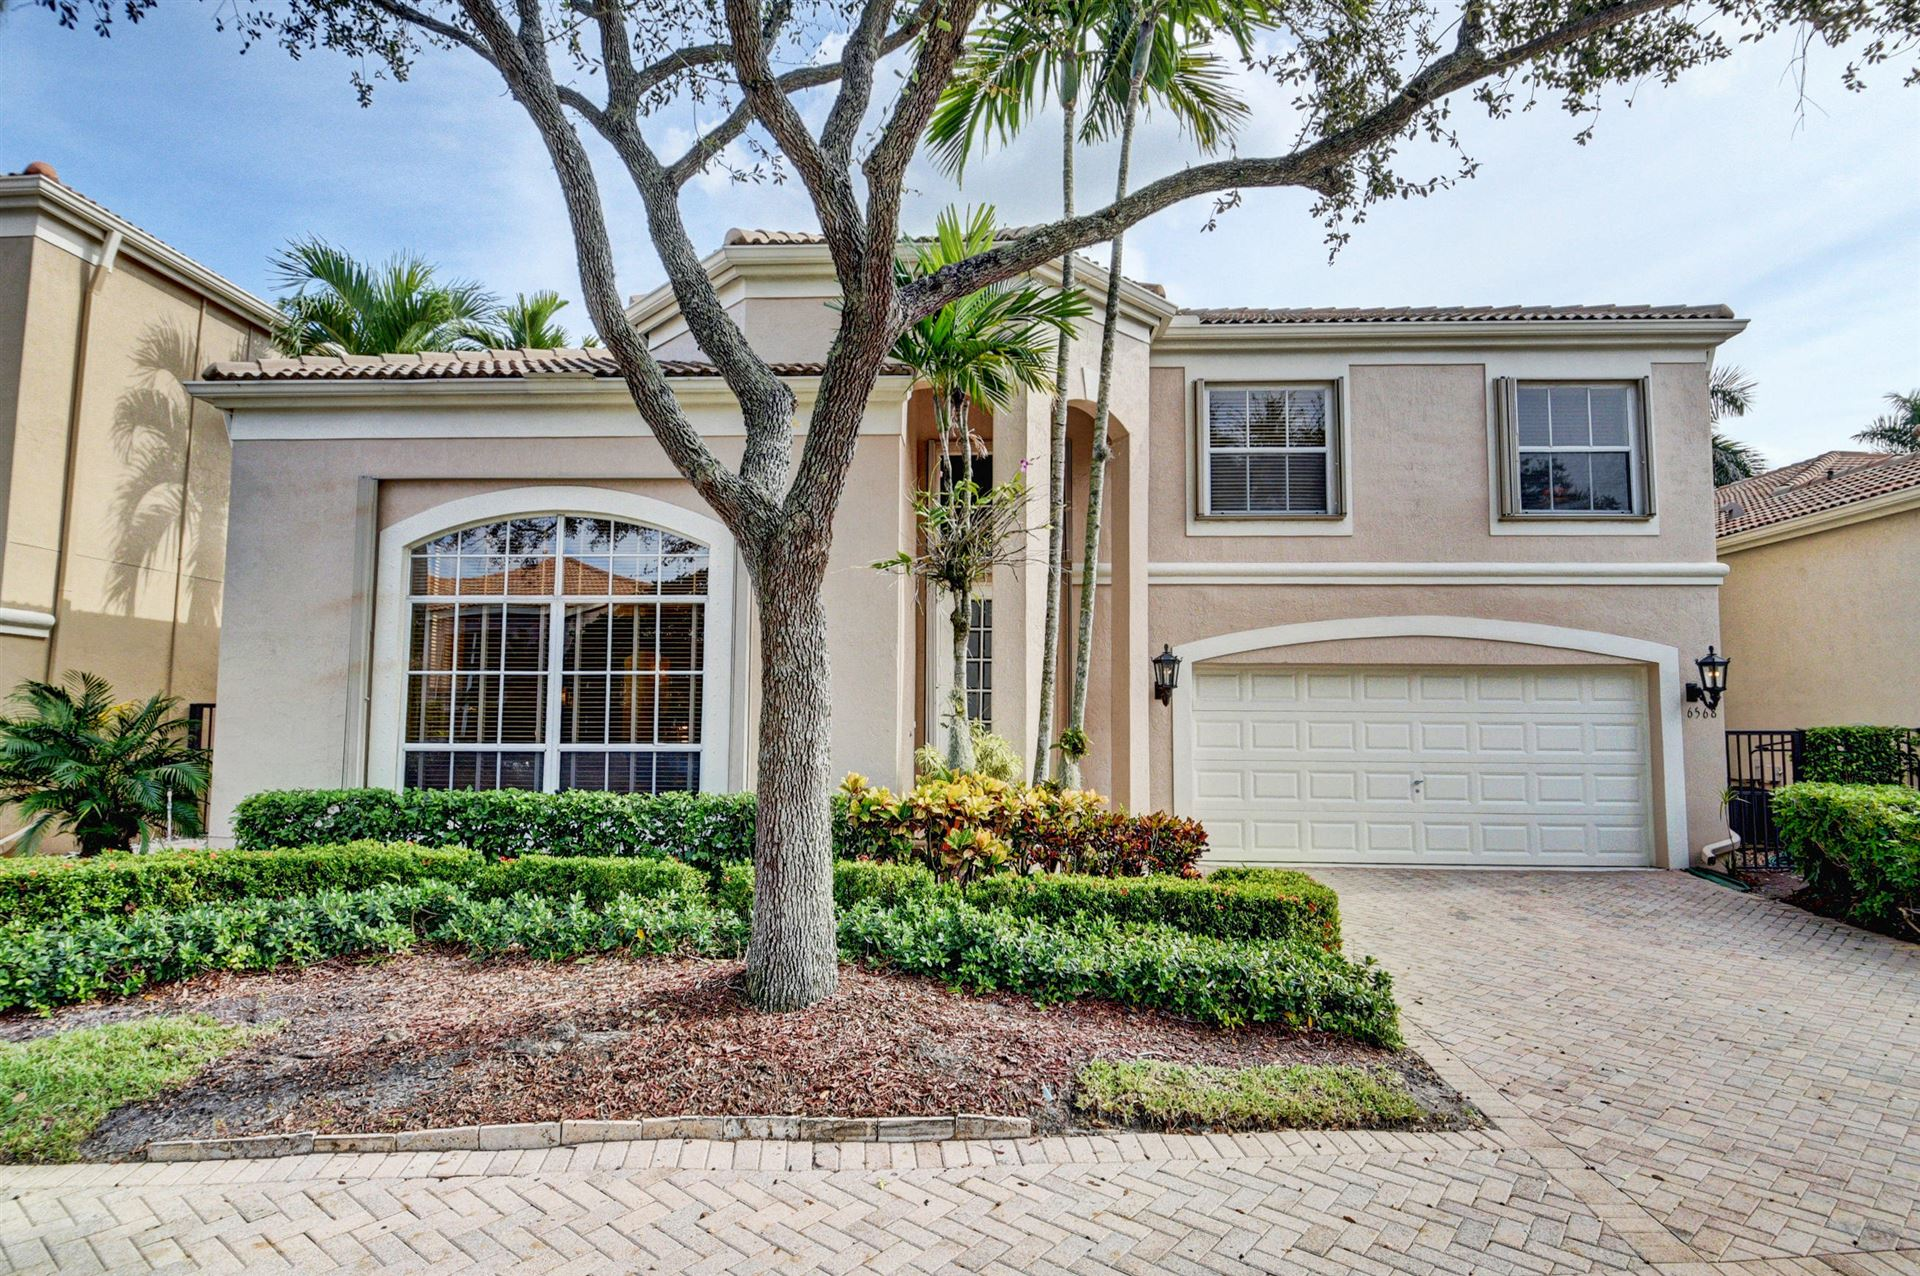 6568 NW 42nd Way, Boca Raton, FL 33496 - #: RX-10653542